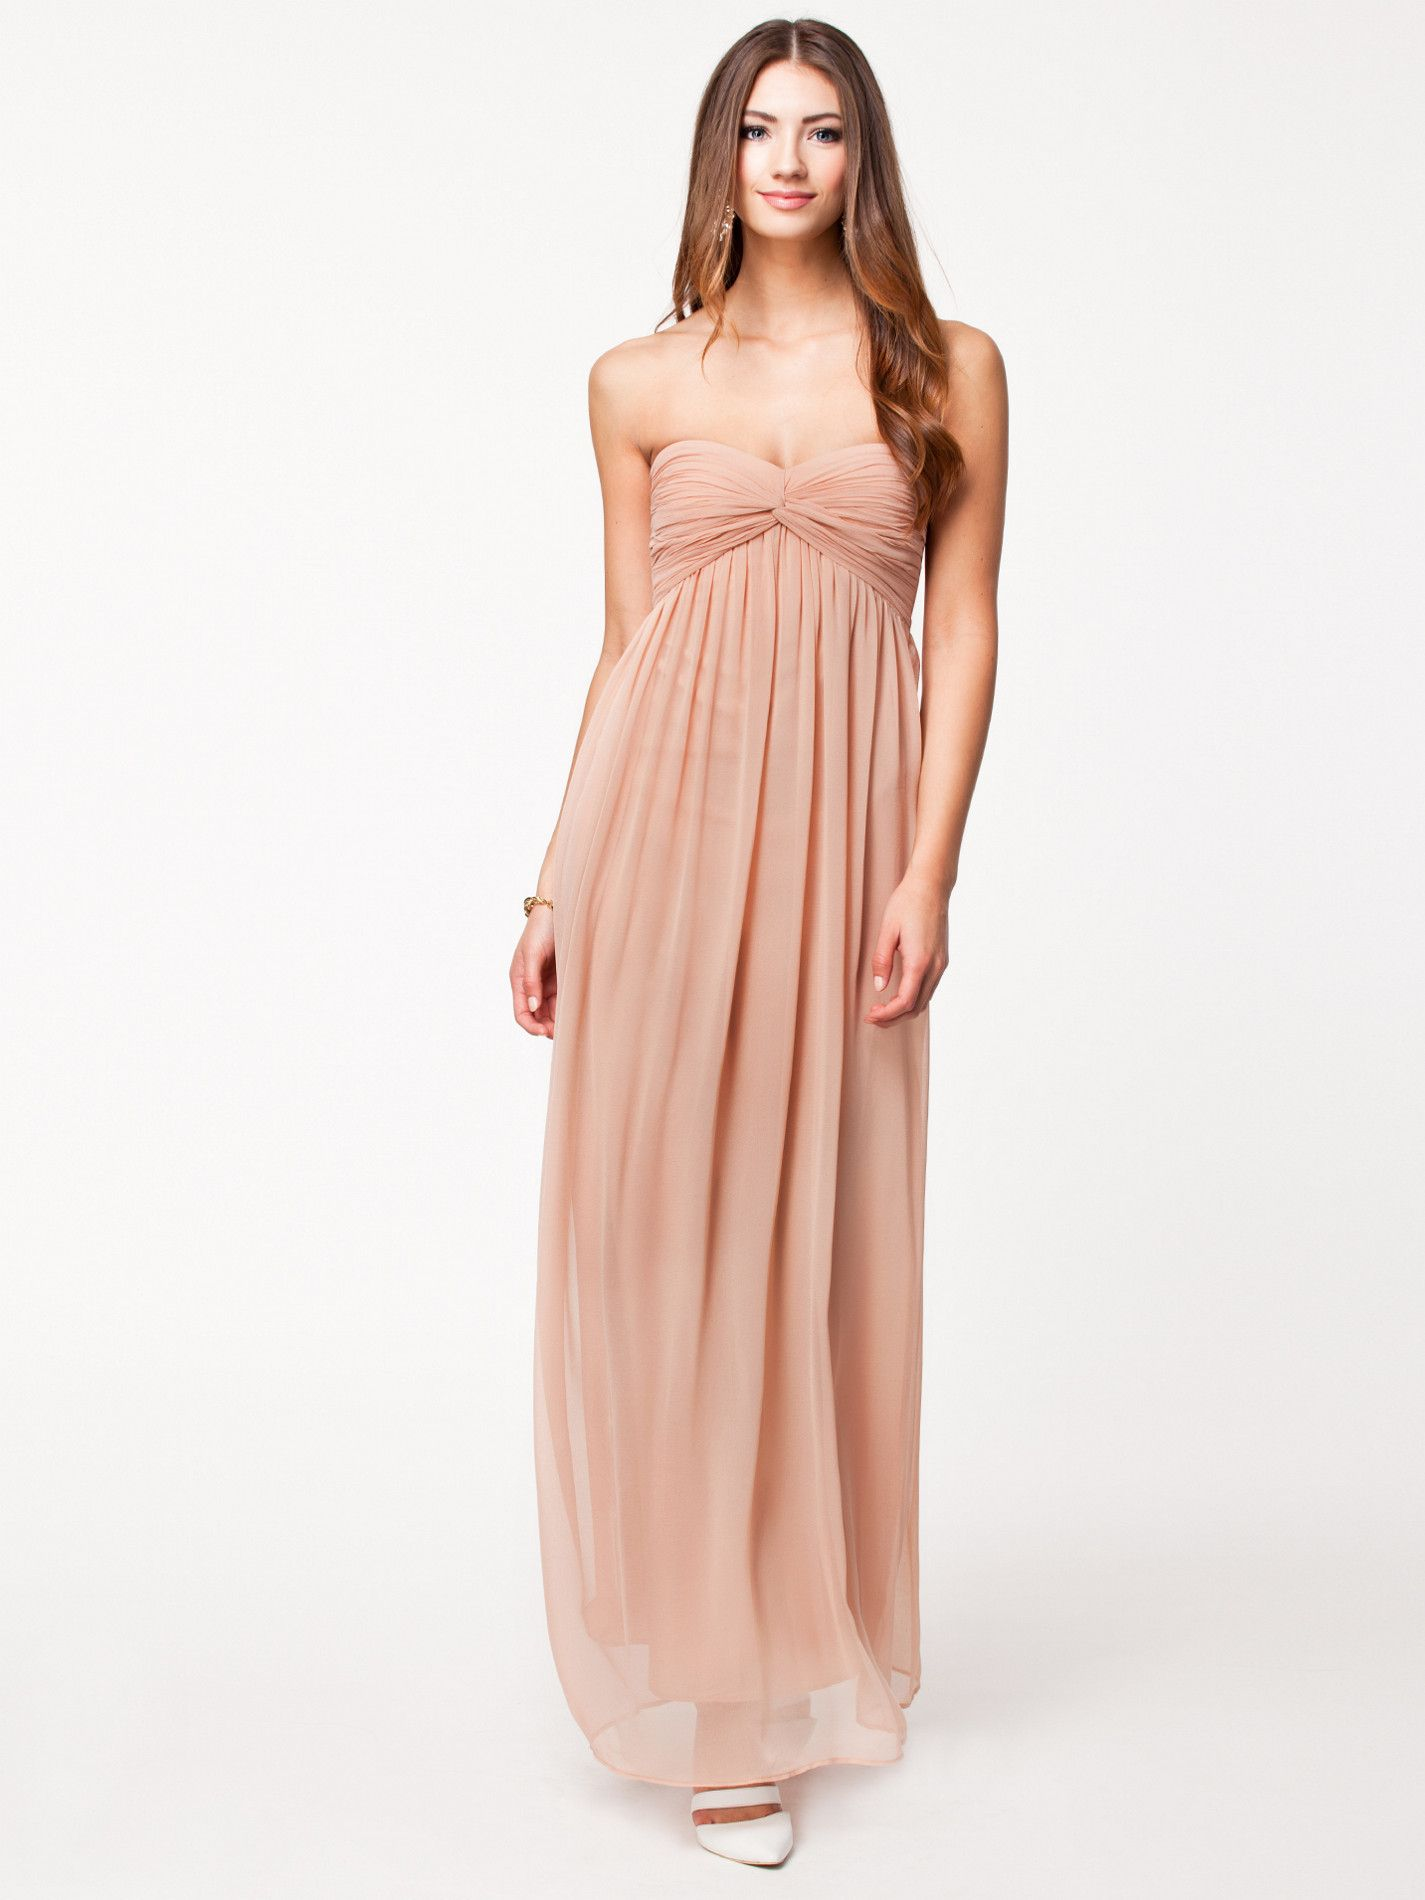 5d3a053eec2233 Dreamy Dress - Nelly